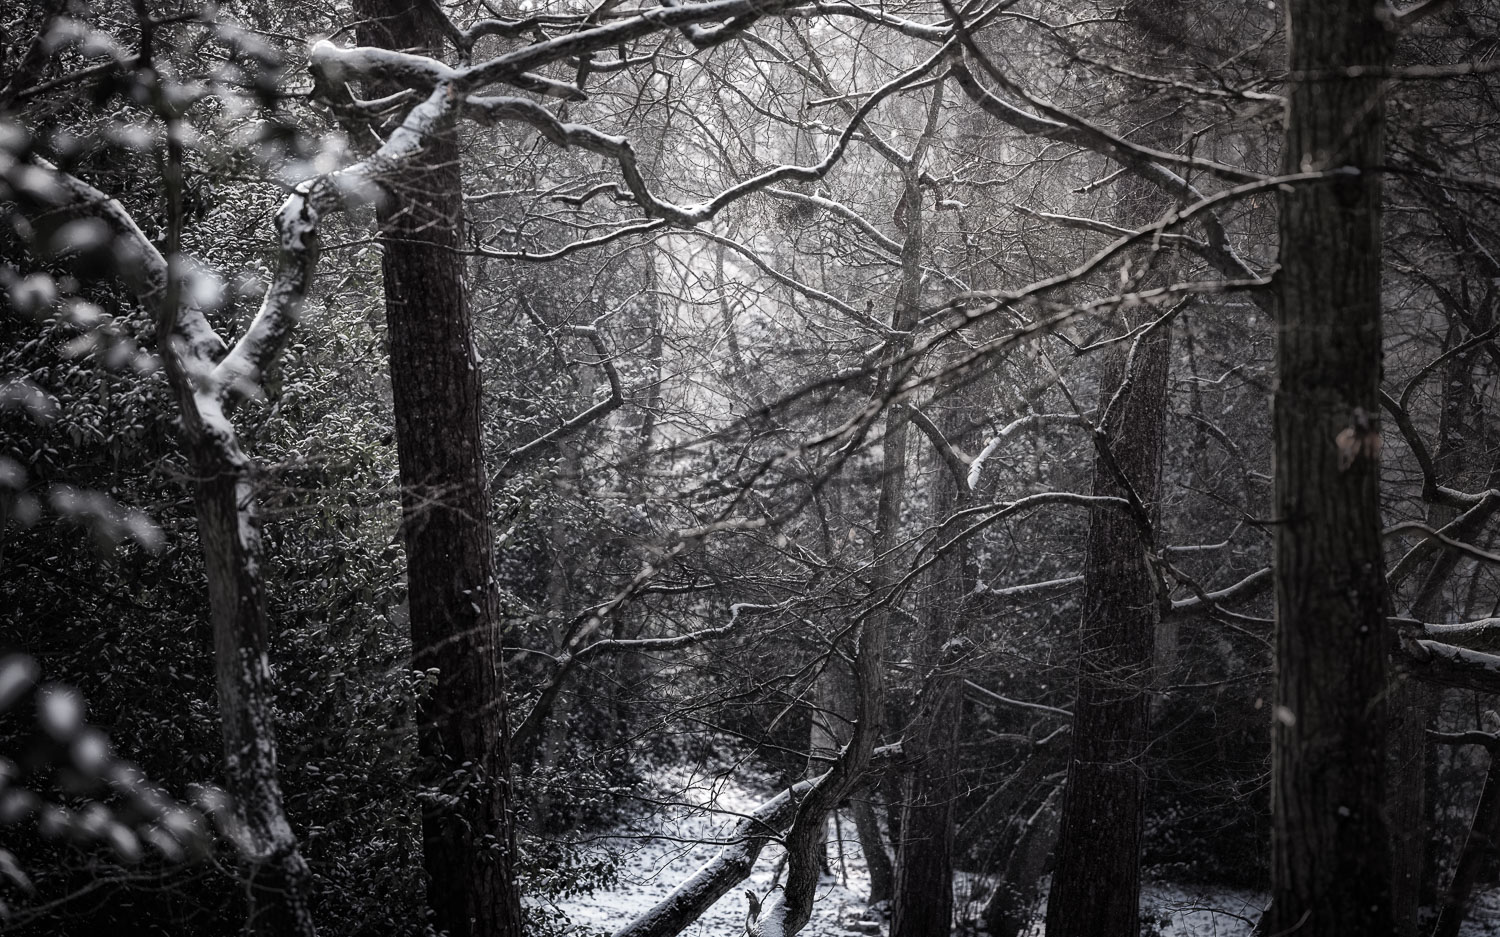 Not a typical winter wonderland shot, but I love photographing woodland in all conditions. There was some fast moving cloud overhead, so moments of good light were fleeting, but when they did break through it created a wonderful mood in the woods.